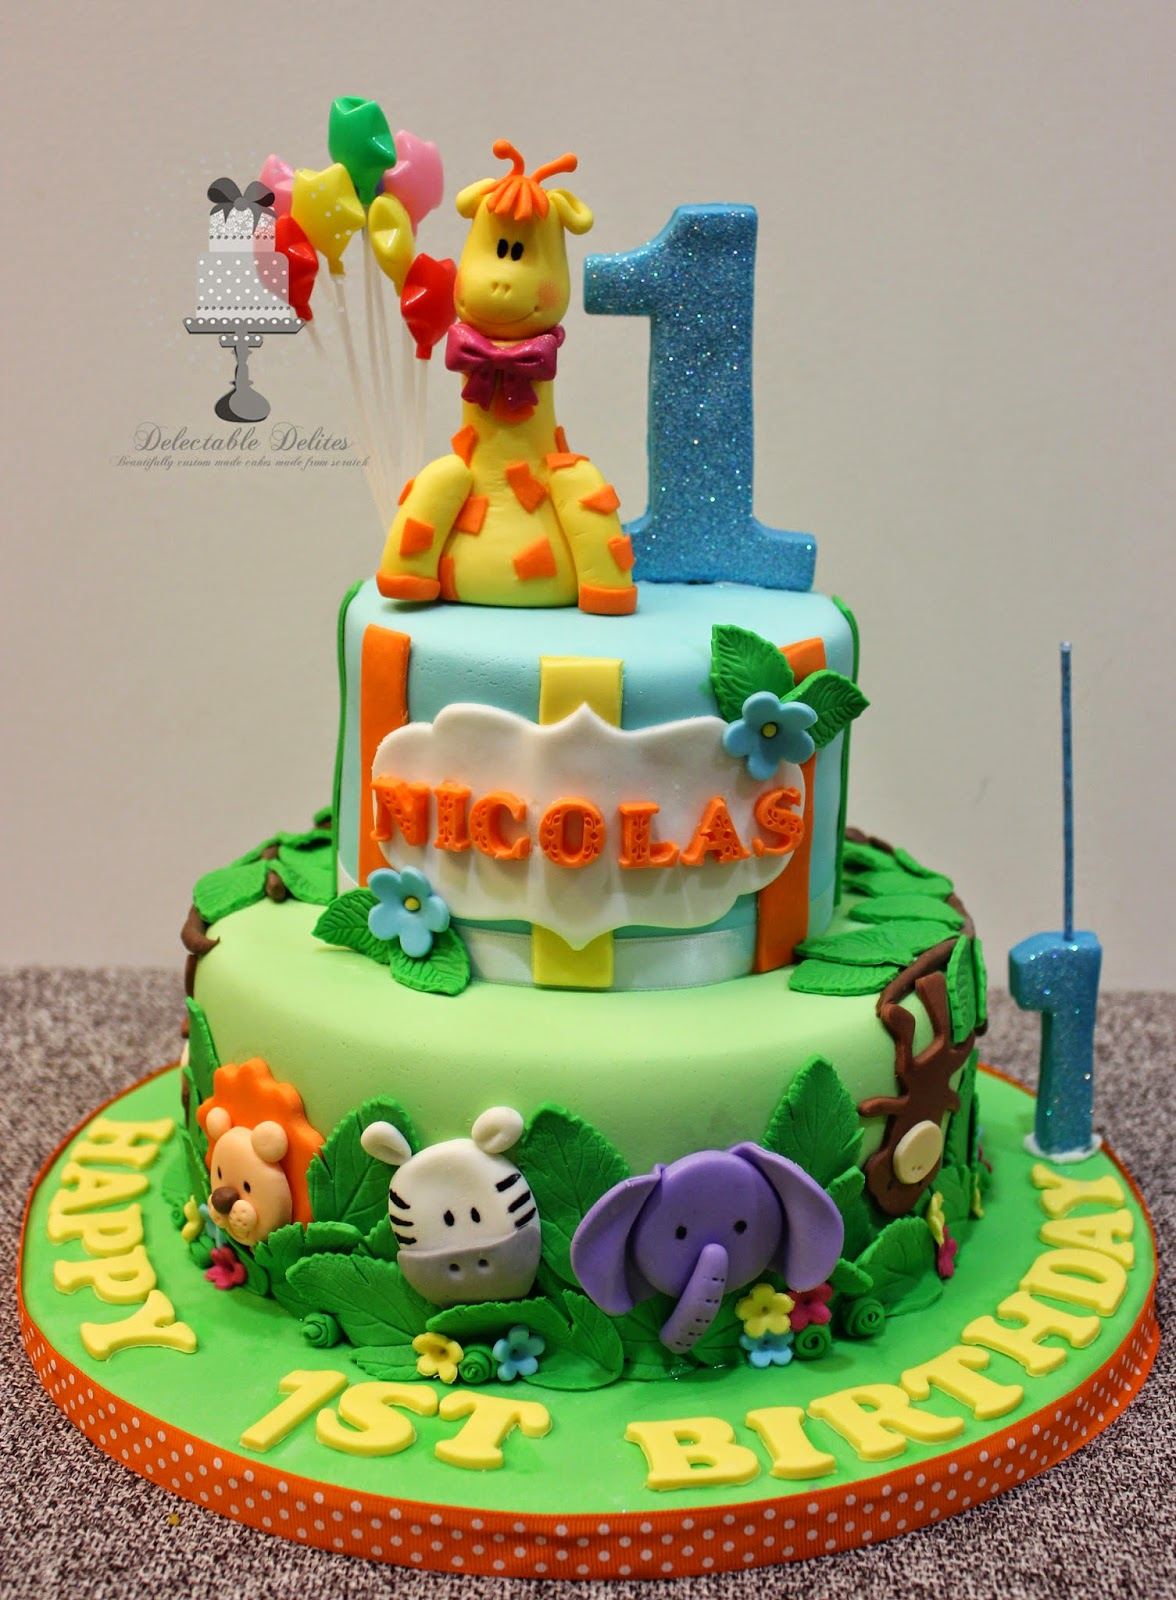 Delectable Delites Safari Theme For Nicolass 1st Birthday